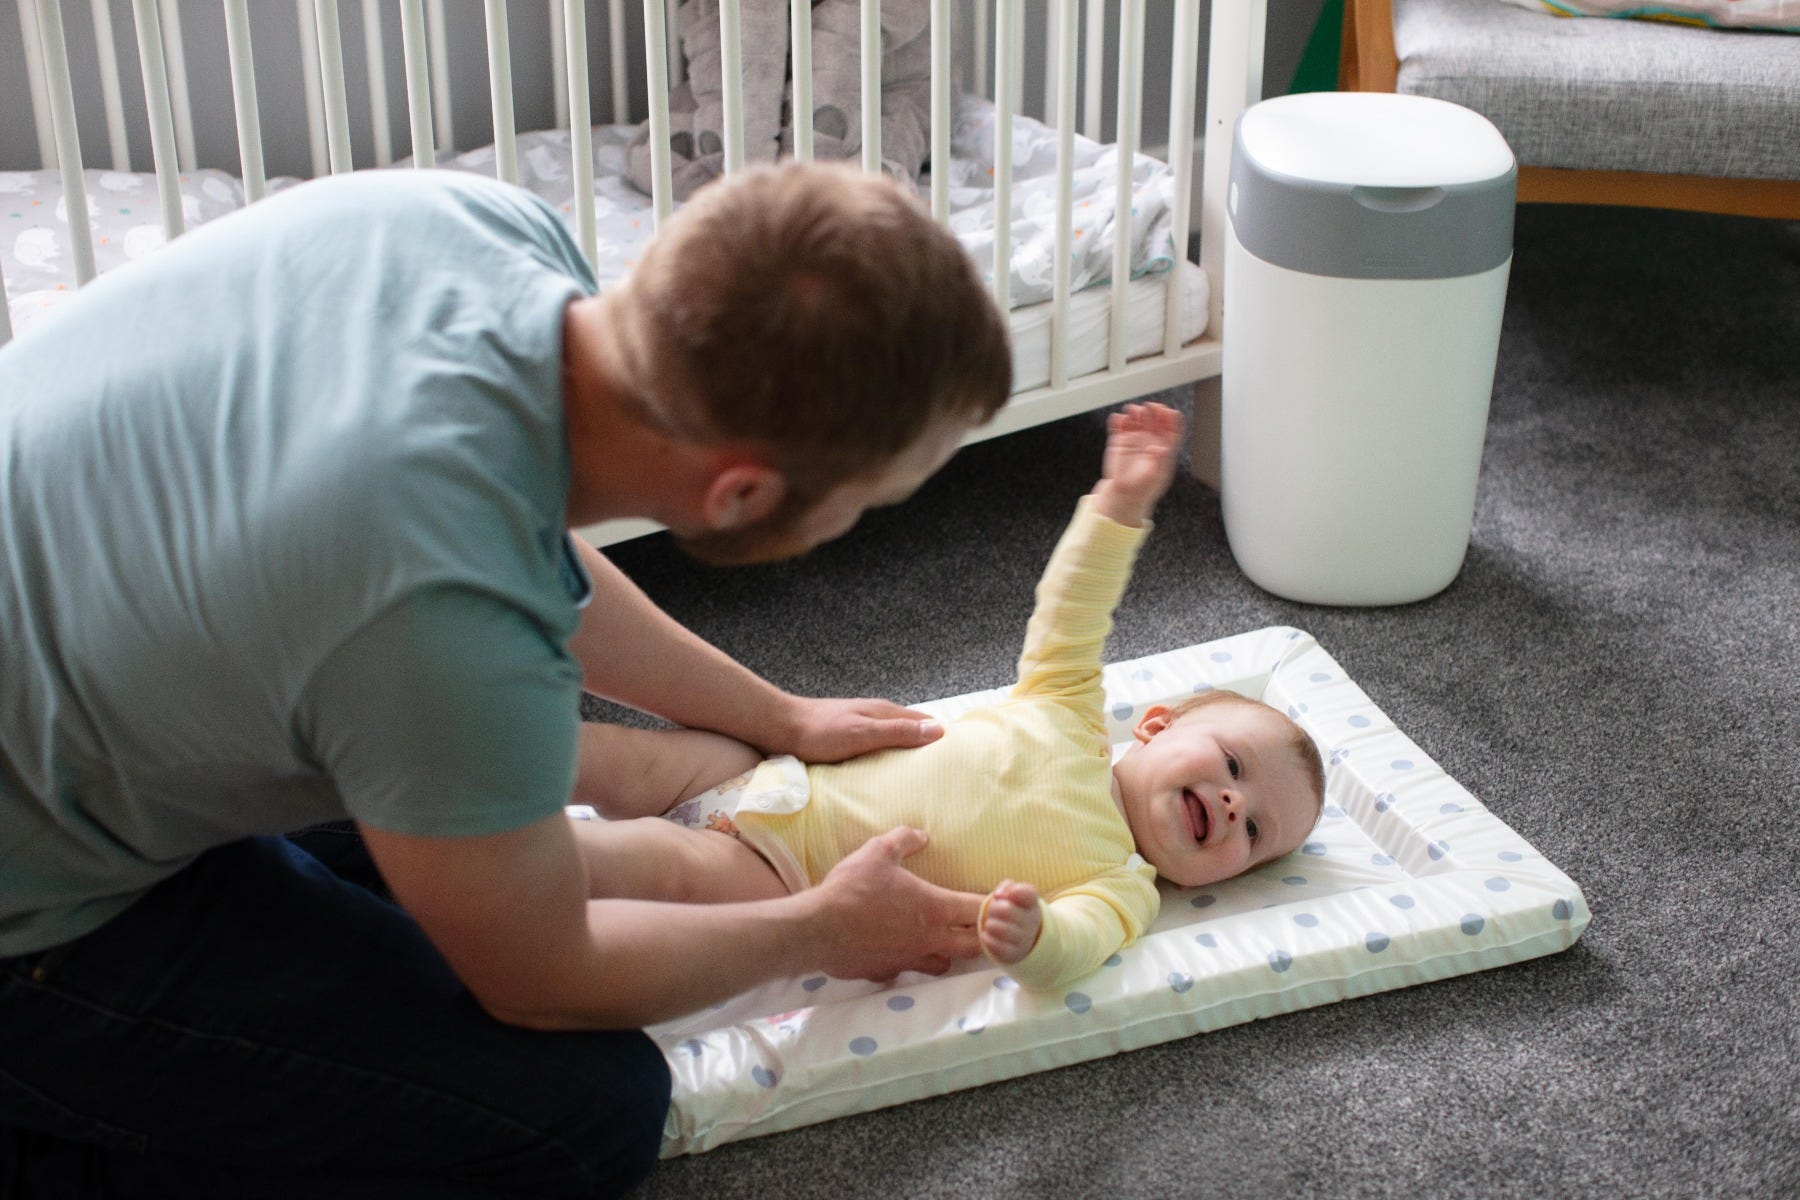 man-changing-baby-nappy-on-floor-in-nursery-whit-white-twist-and-click-in-background